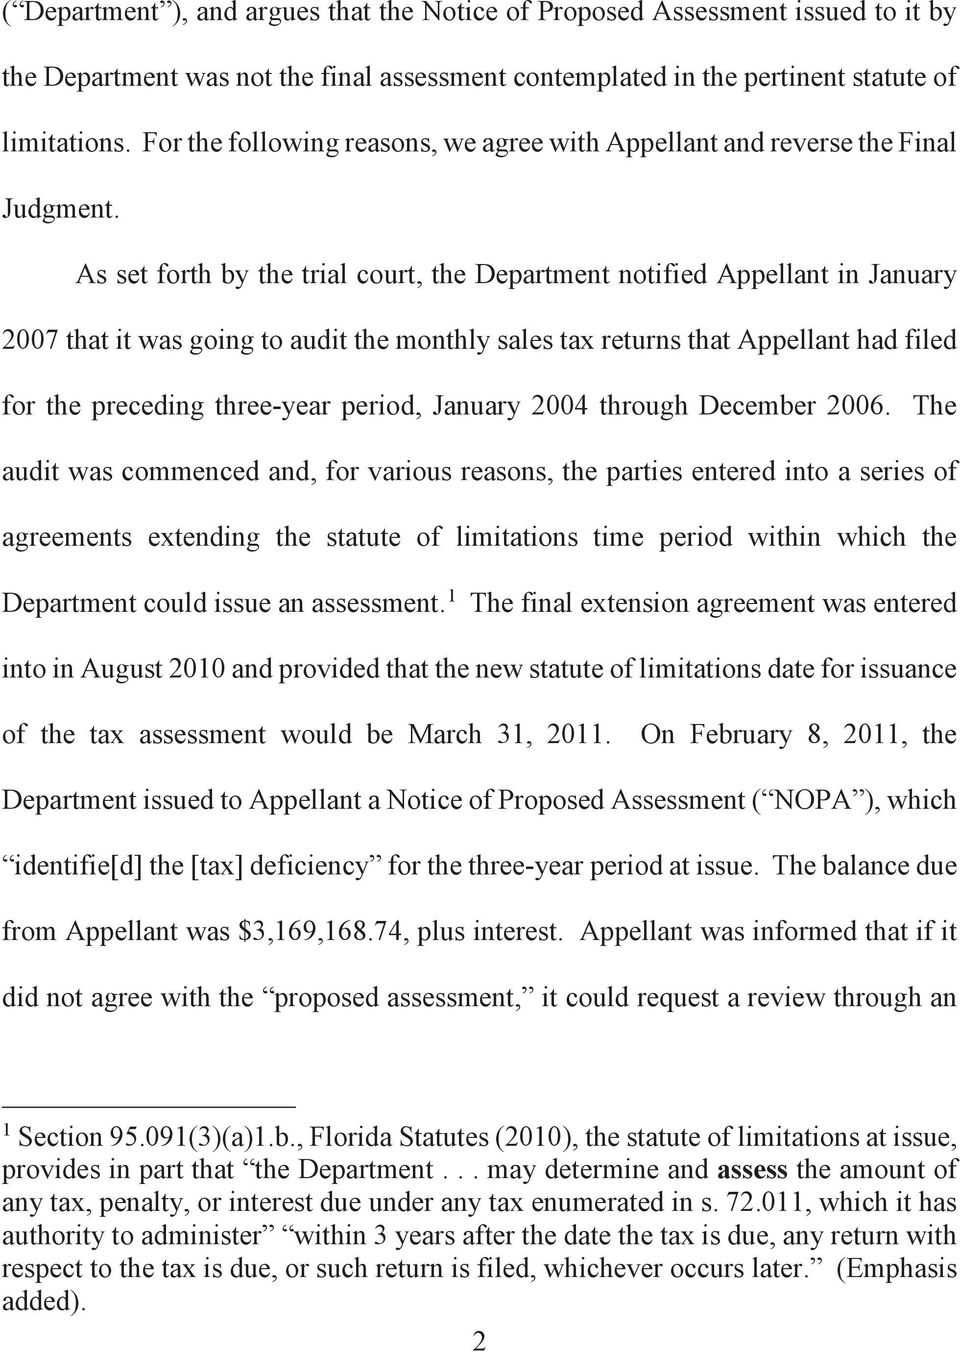 As set forth by the trial court, the Department notified Appellant in January 2007 that it was going to audit the monthly sales tax returns that Appellant had filed for the preceding three-year